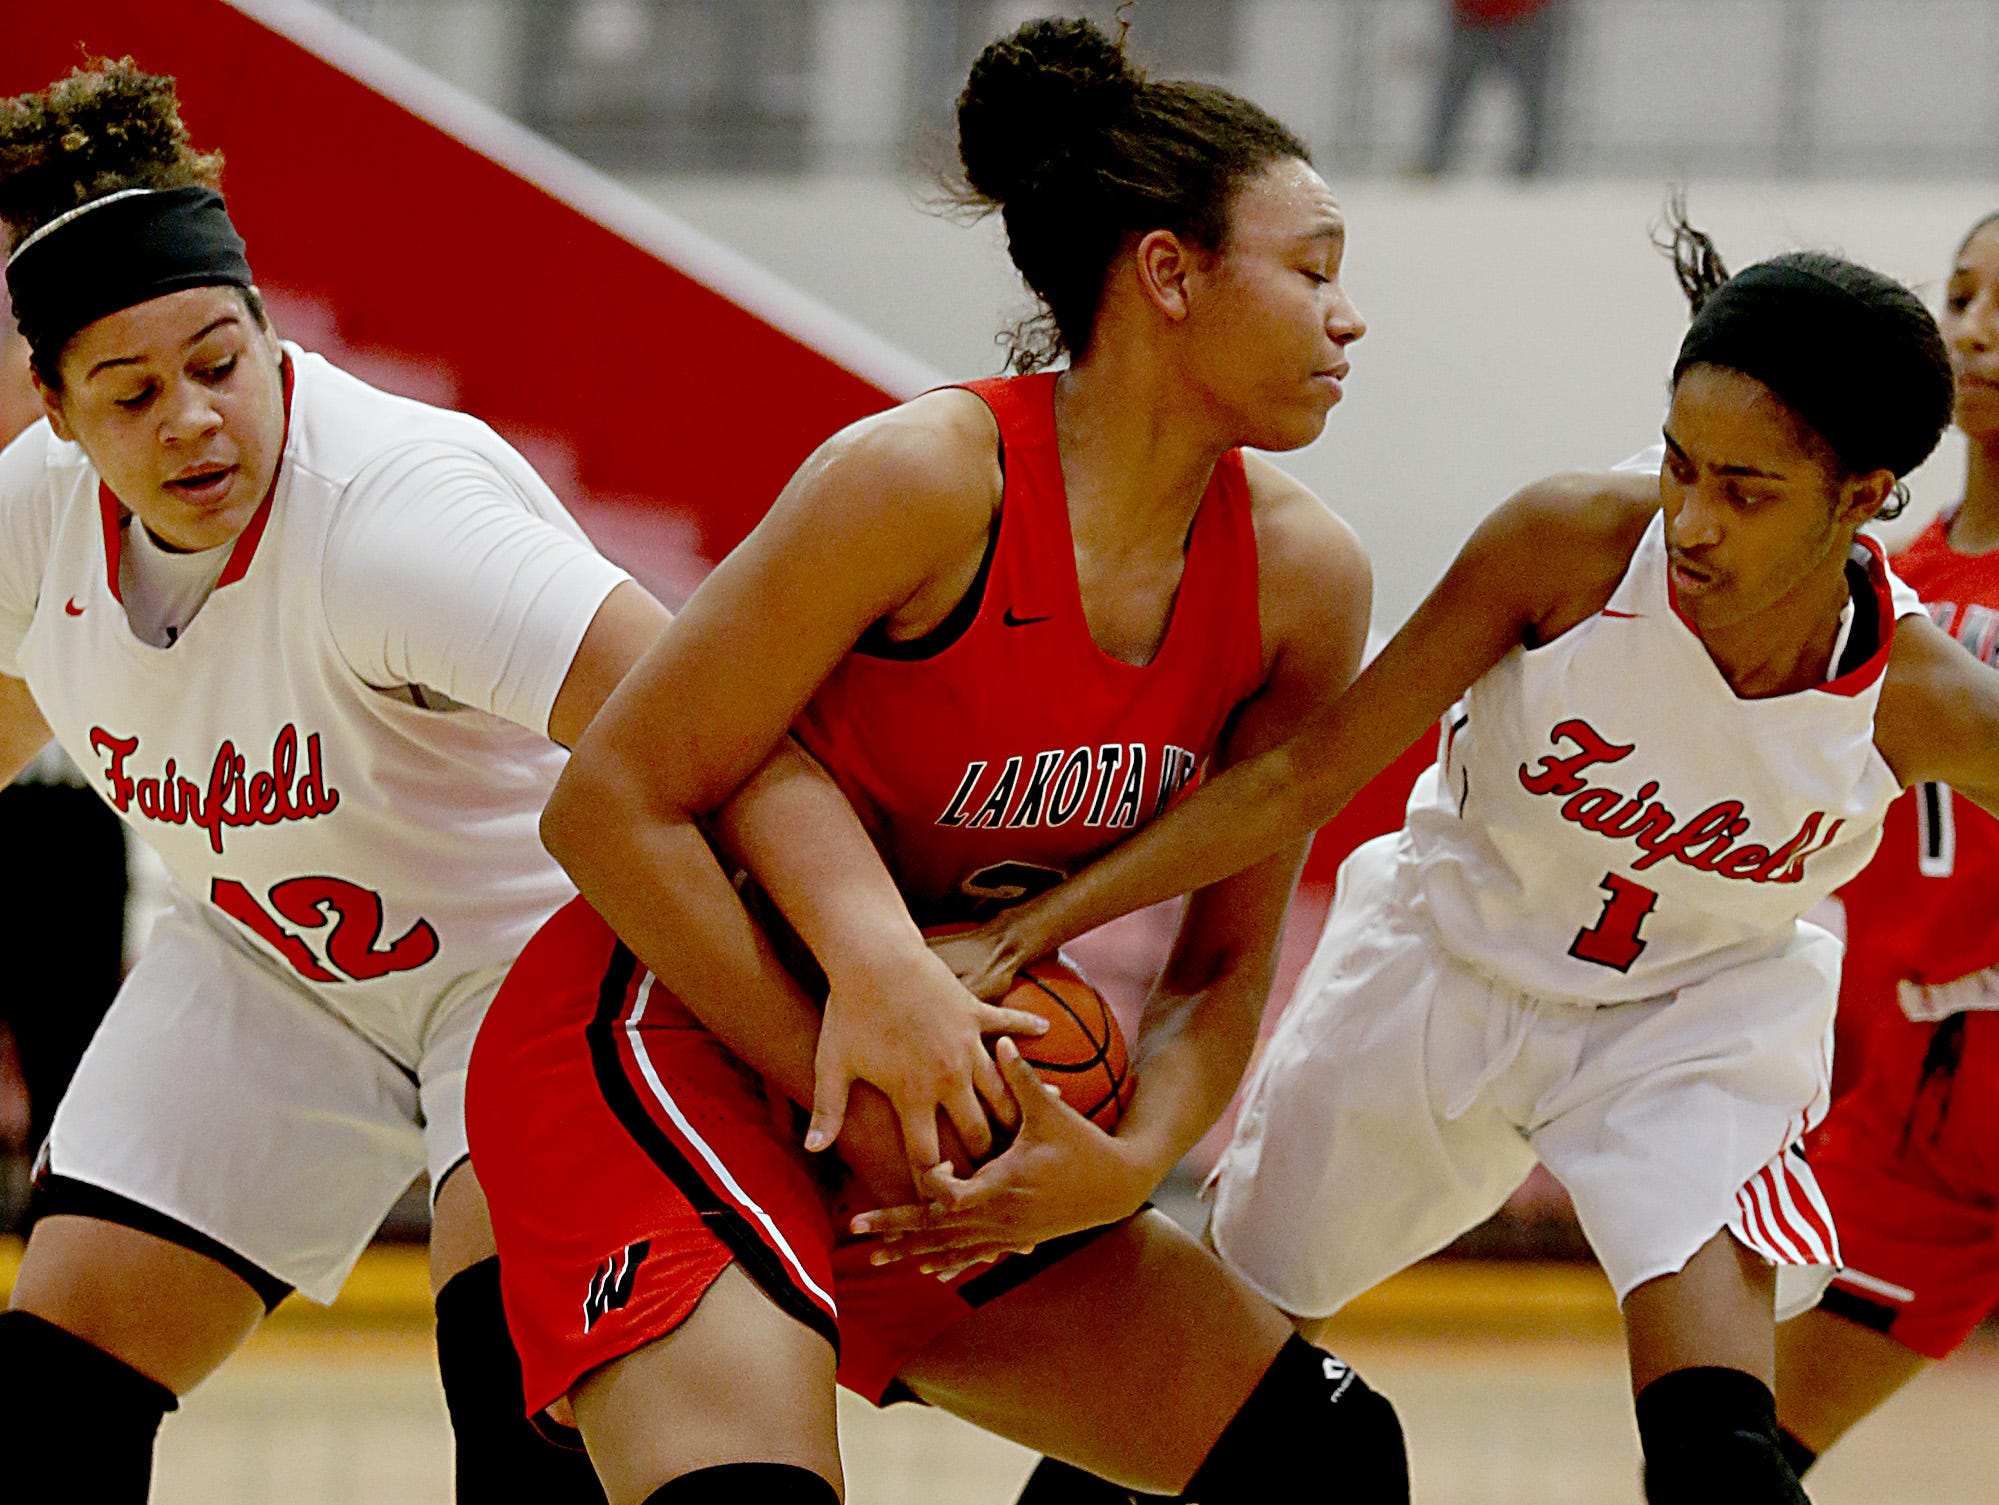 Lakota West's Nevaeh Dean tries to keep the ball from Fairfield's Maddie Schaeffer and Shaniyah Reese during their game at Fairfield Saturday, Dec. 1, 2018.